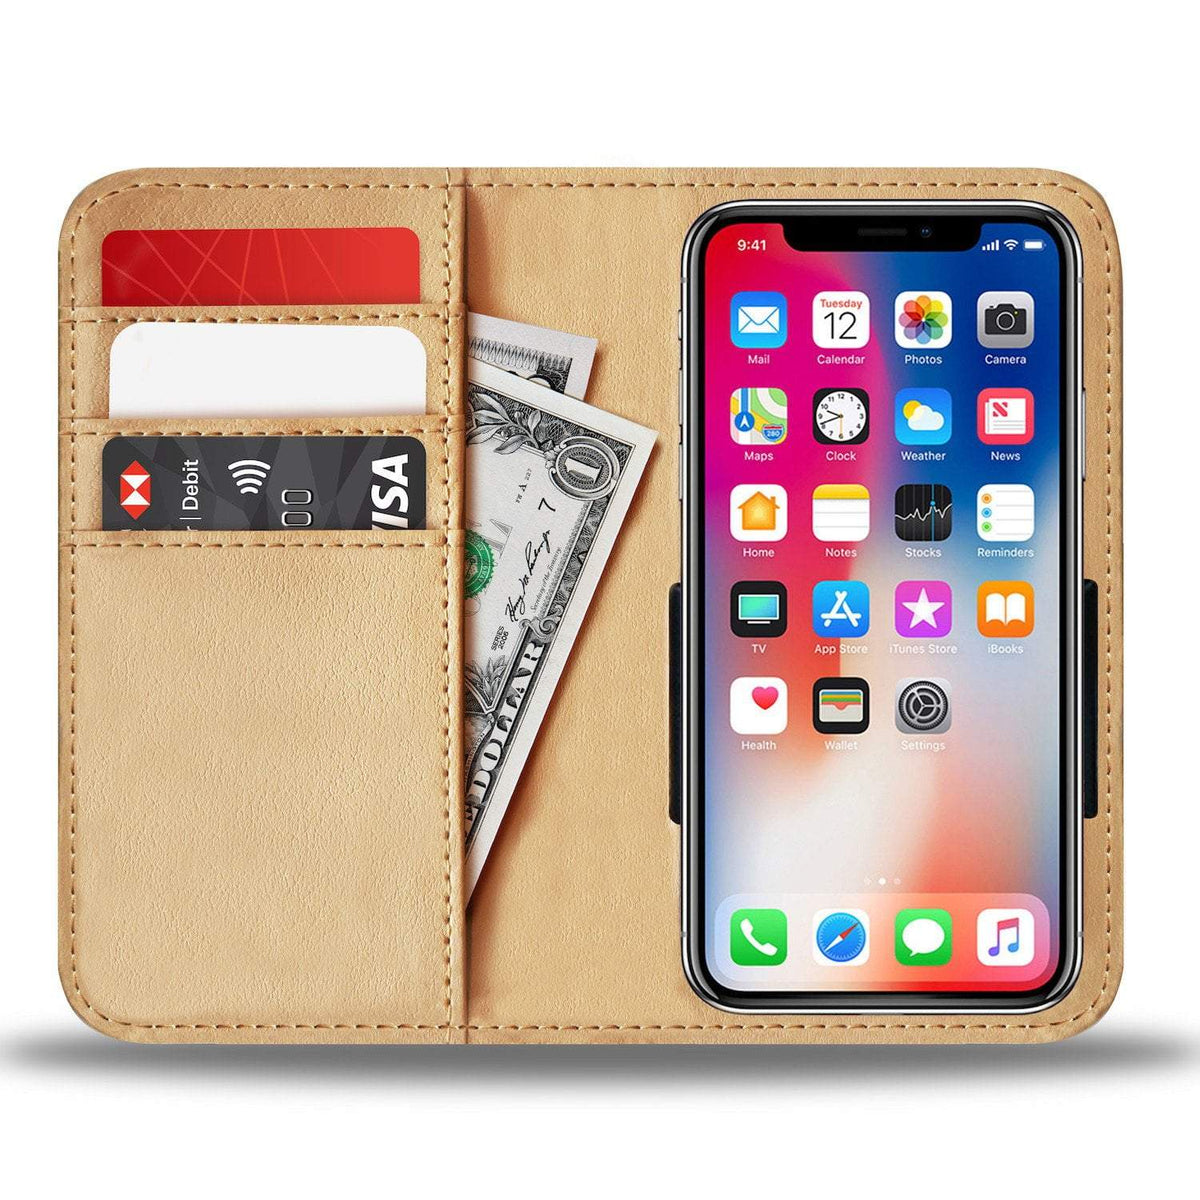 Pacific Pike -  Fortnite Curious Llama Wallet iPhone Case  -  iPhone X / Xs  -  Wallet Case